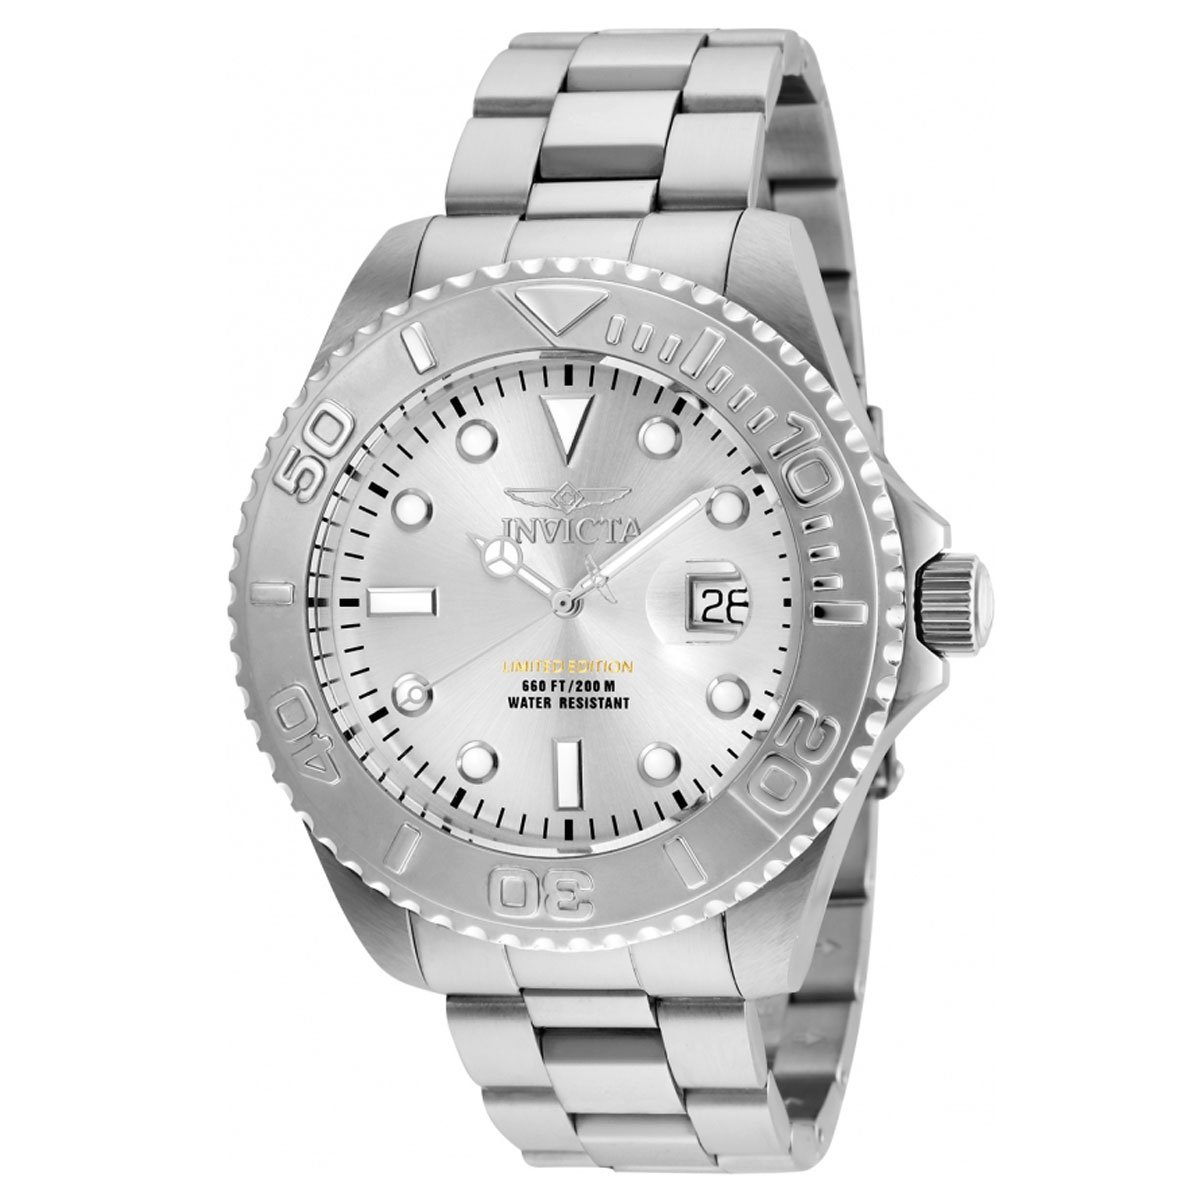 Invicta Men's 'Pro Diver' Quartz Stainless Steel Diving Watch, Color:Silver-Toned (Model: 24621)